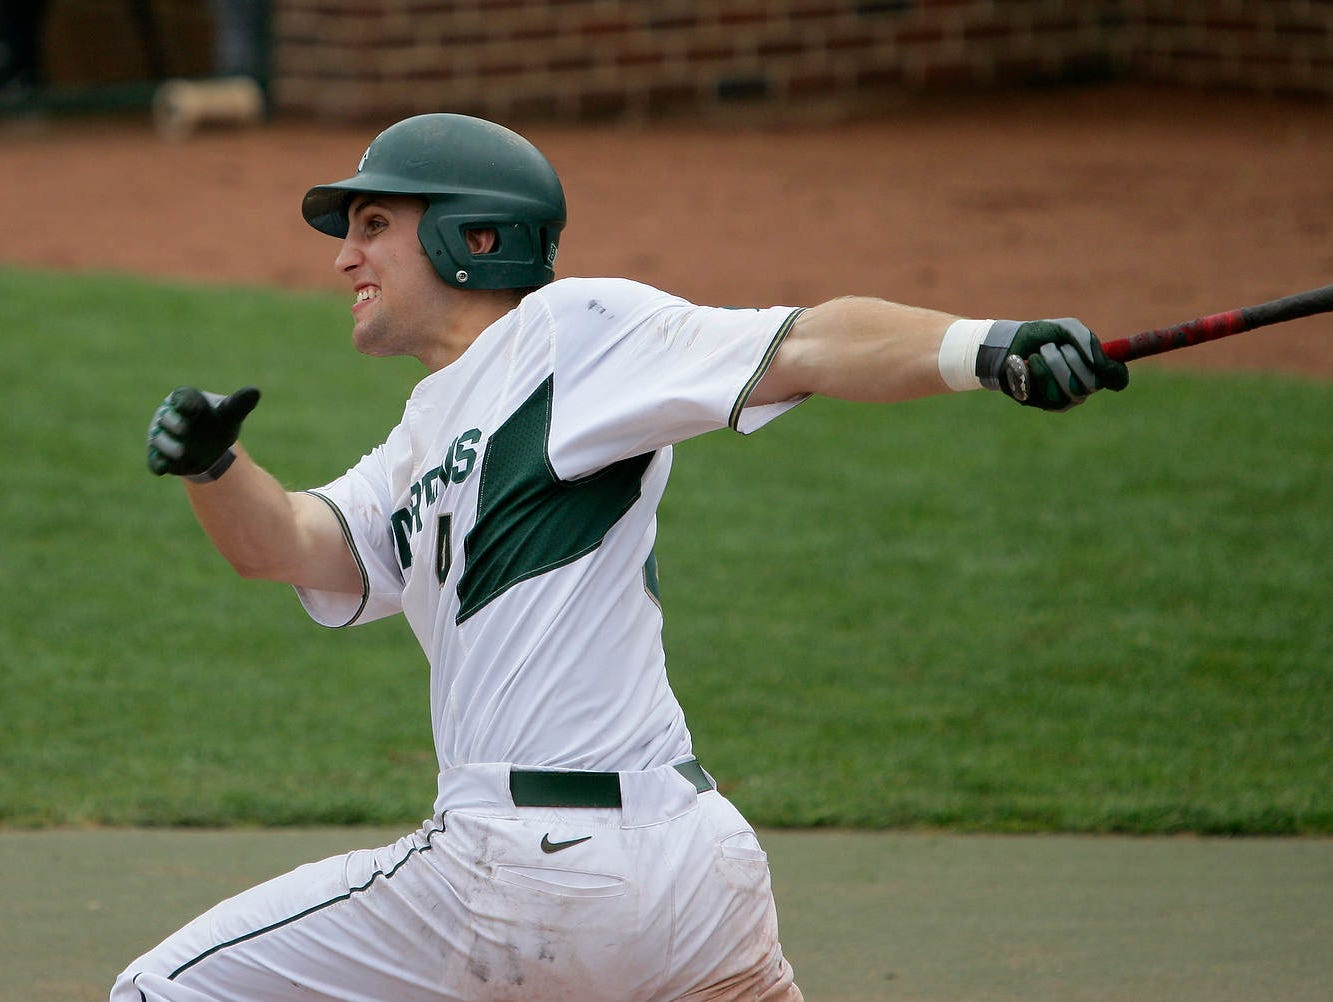 Michigan State's Mark Weist follows through on his solo homer in the 1st inning against Penn State Saturday, May 9, 2015, in East Lansing, Mich. Michigan State won 5-4.